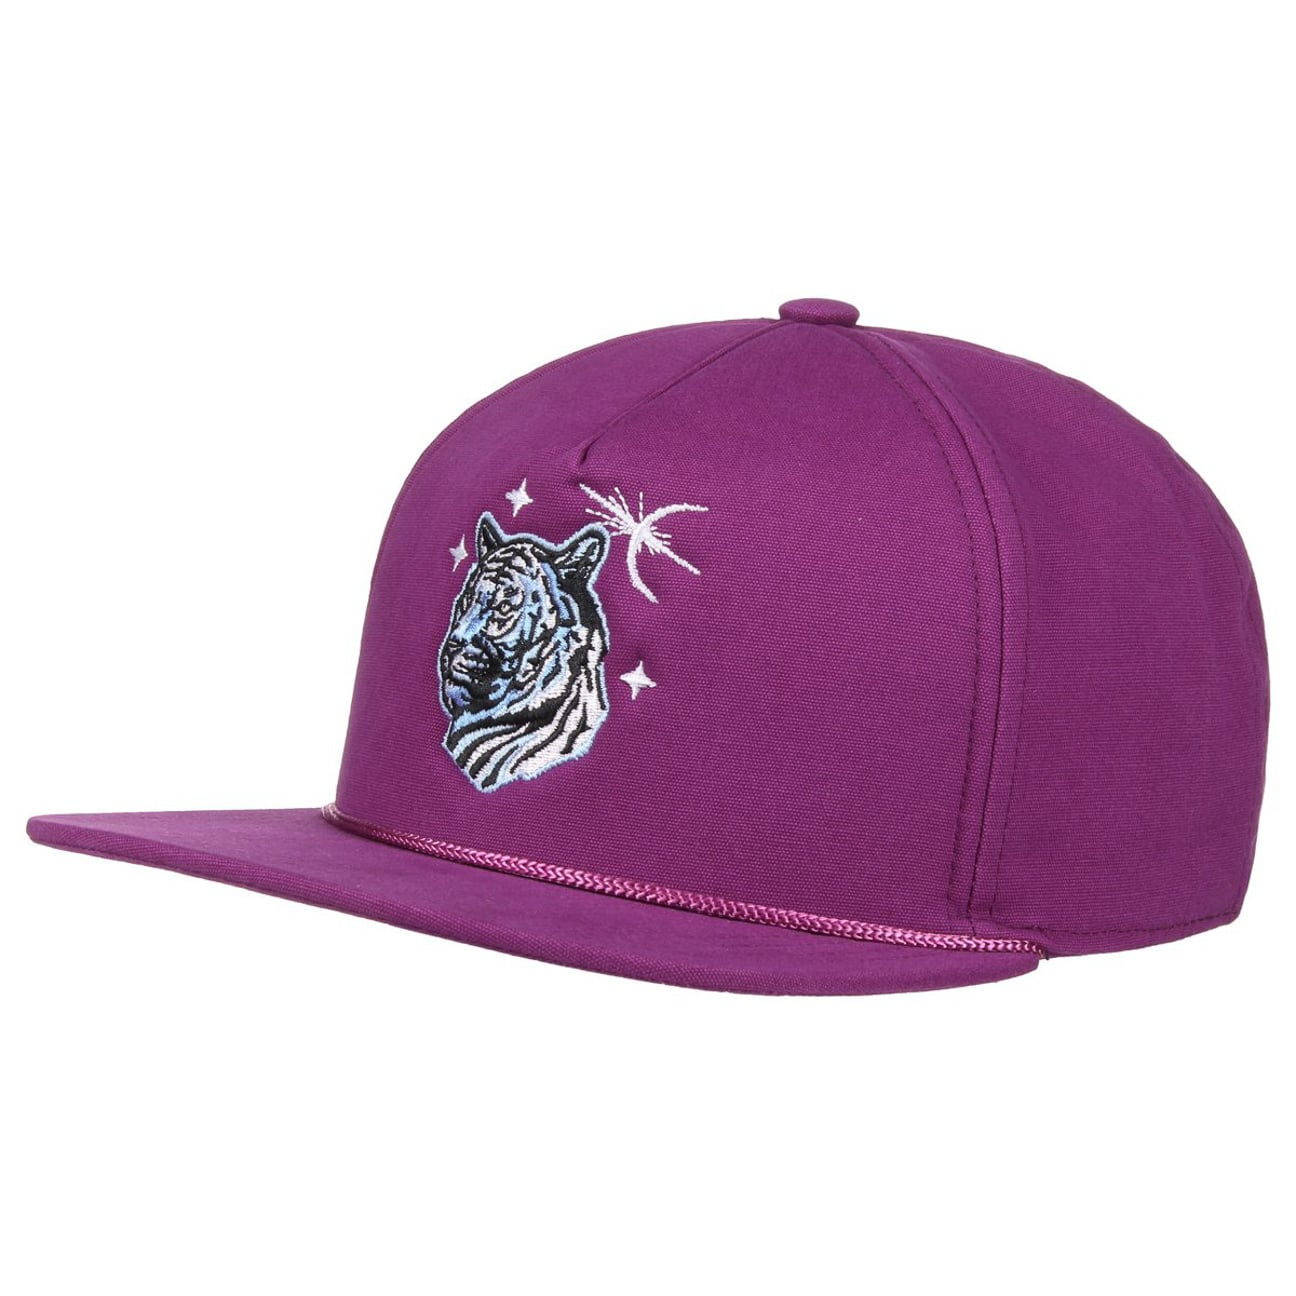 Gorra The Lore Tiger Snapback by Coal  snapback cap